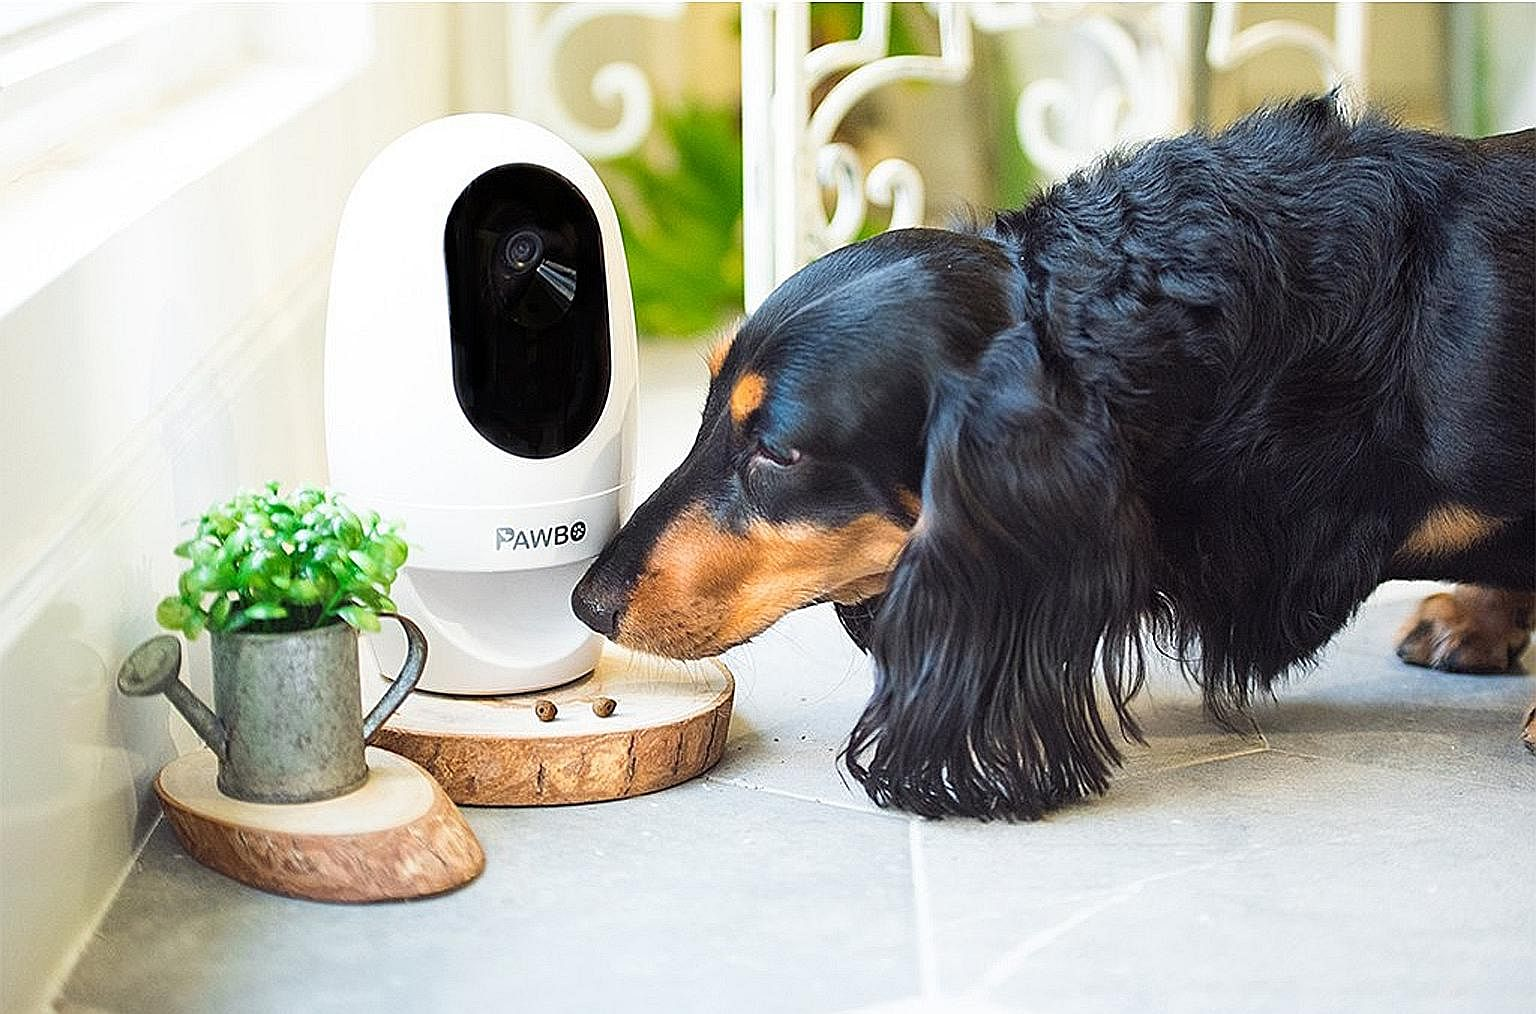 If you see that your pet has been a good boy, tap a button on your smartphone and the Pawbo+ smart pet camera will dispense a reward.